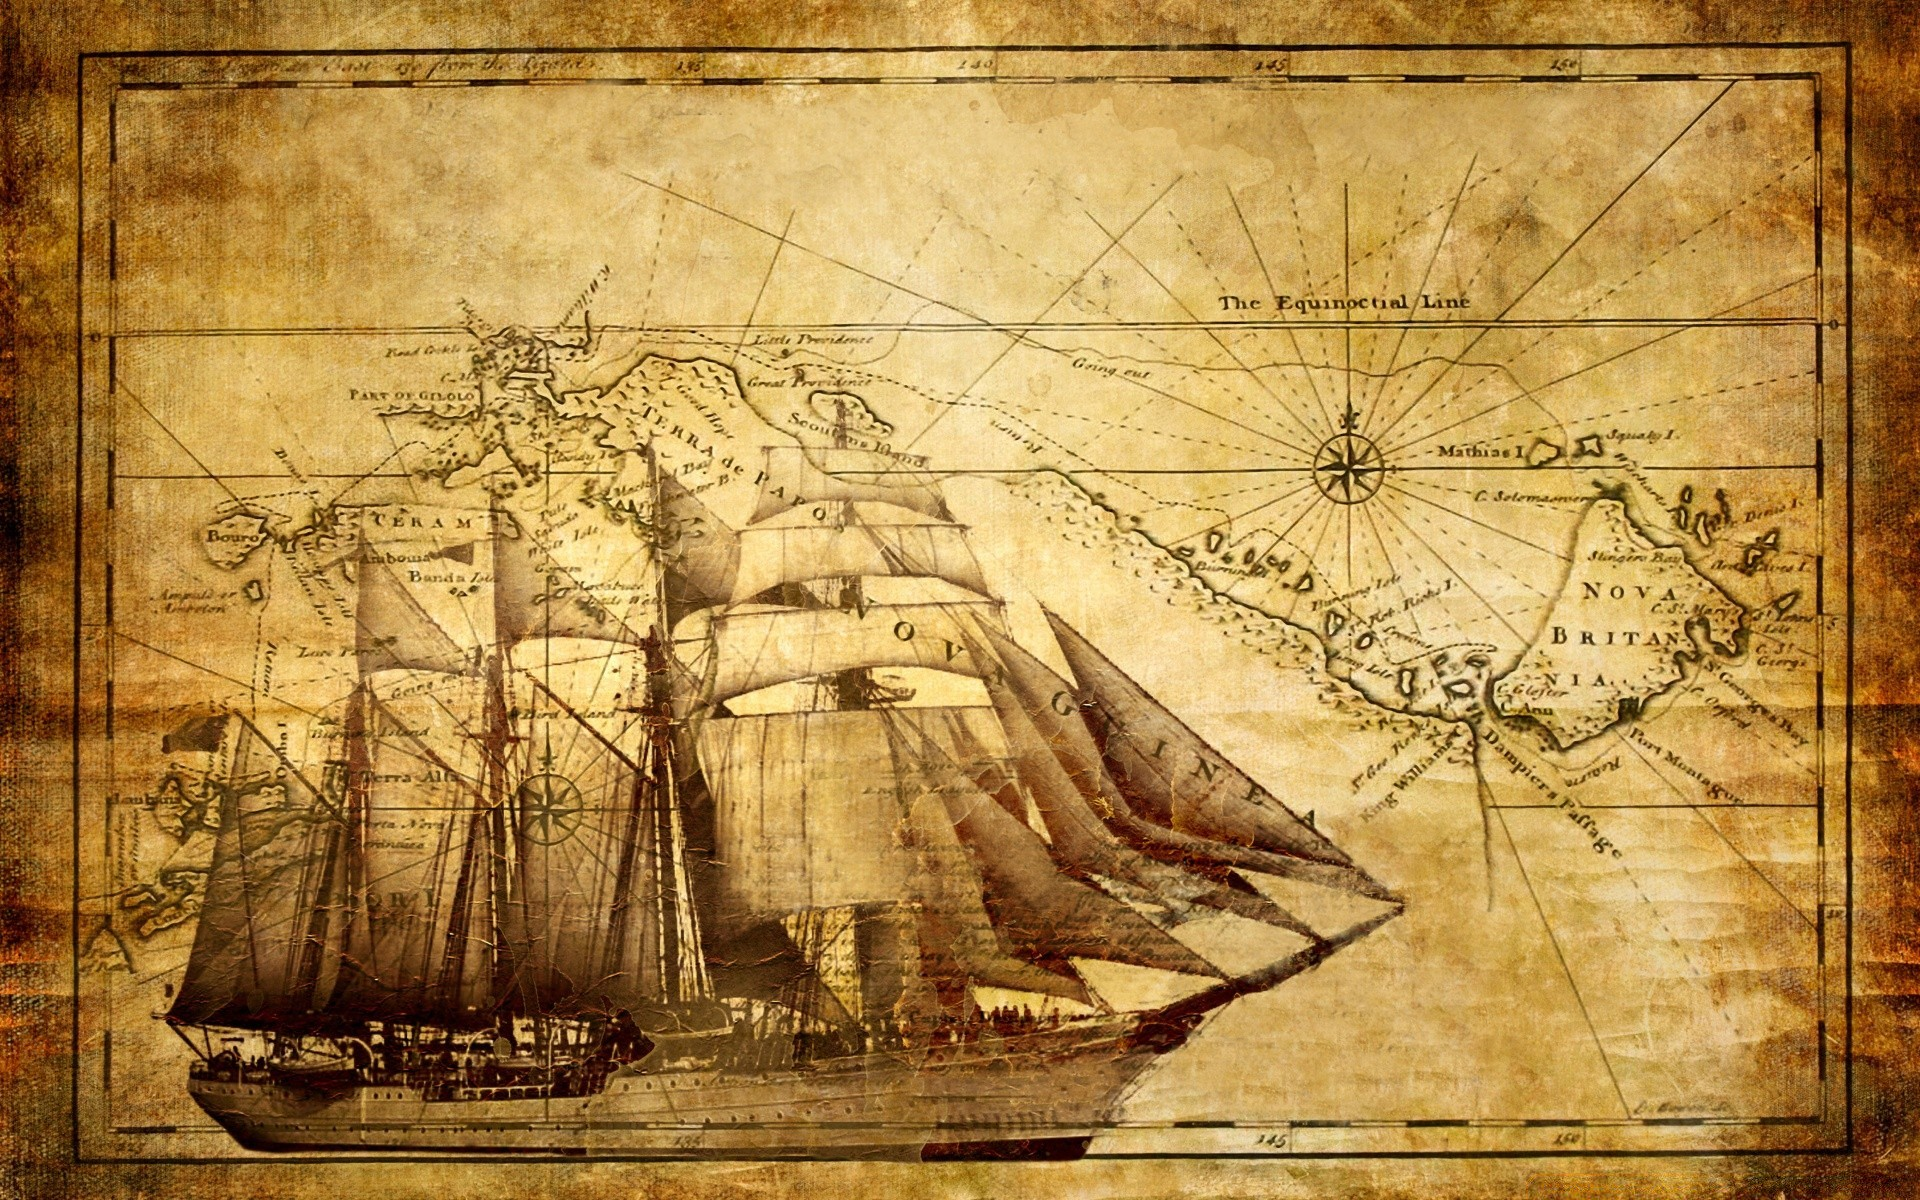 vintage illustration old paper art retro antique painting parchment desktop print picture frame dirty exploration ancient design ship watercraft manuscript texture